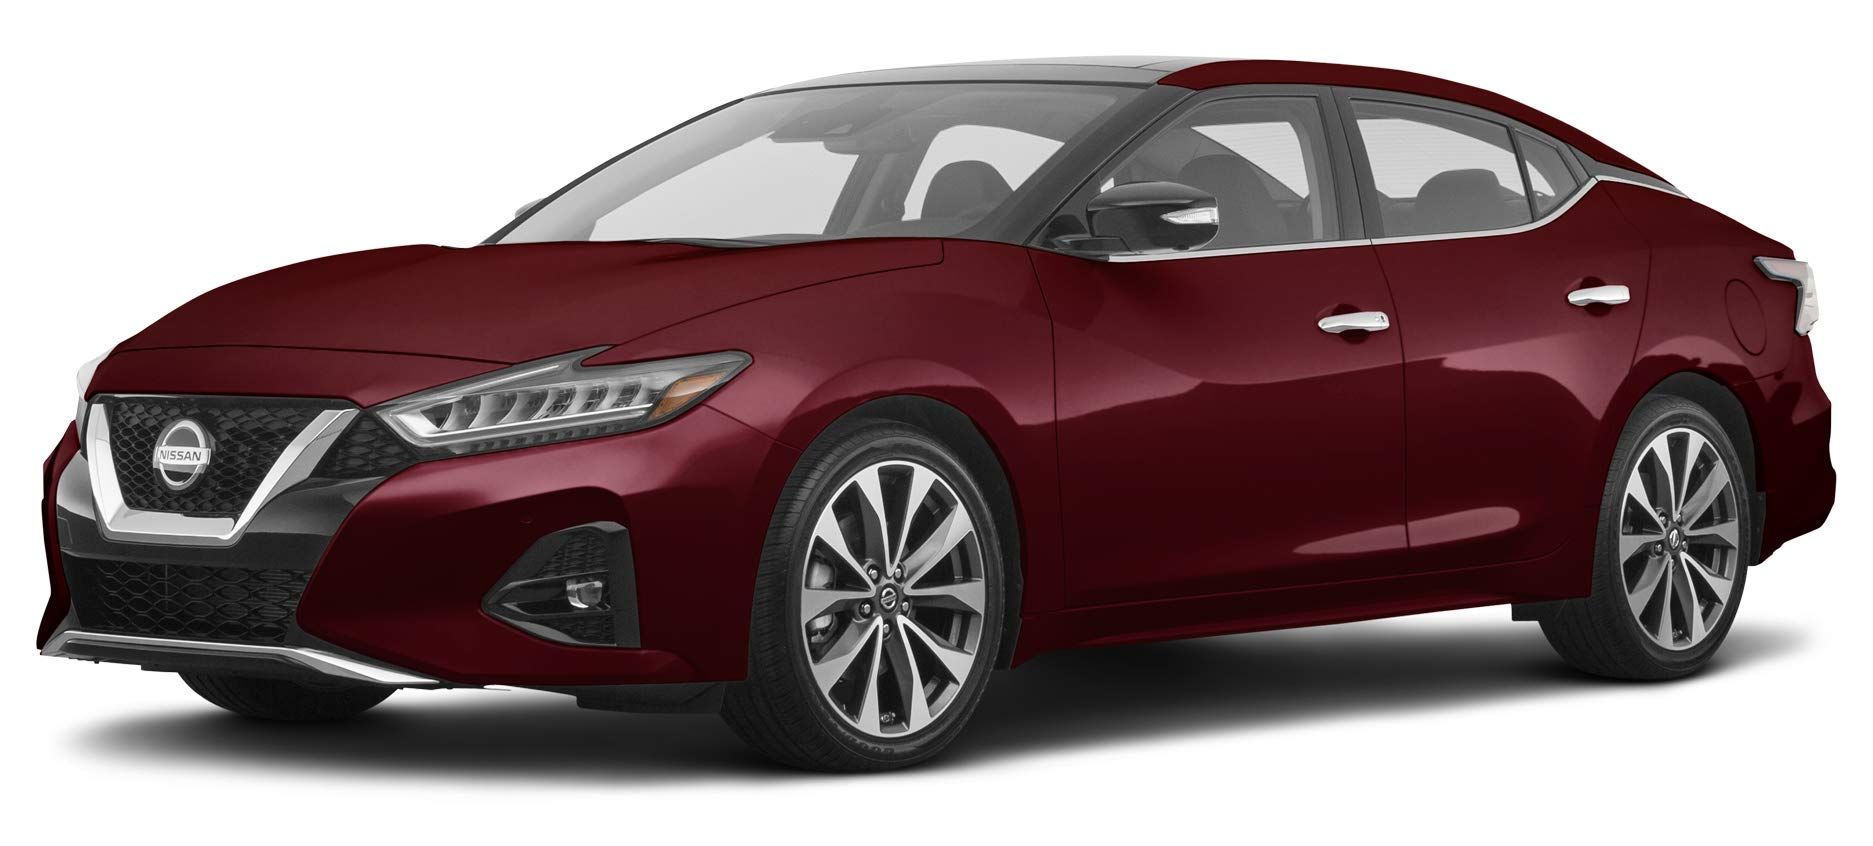 2020 Nissan Maxima Reviews, Images, and Specs